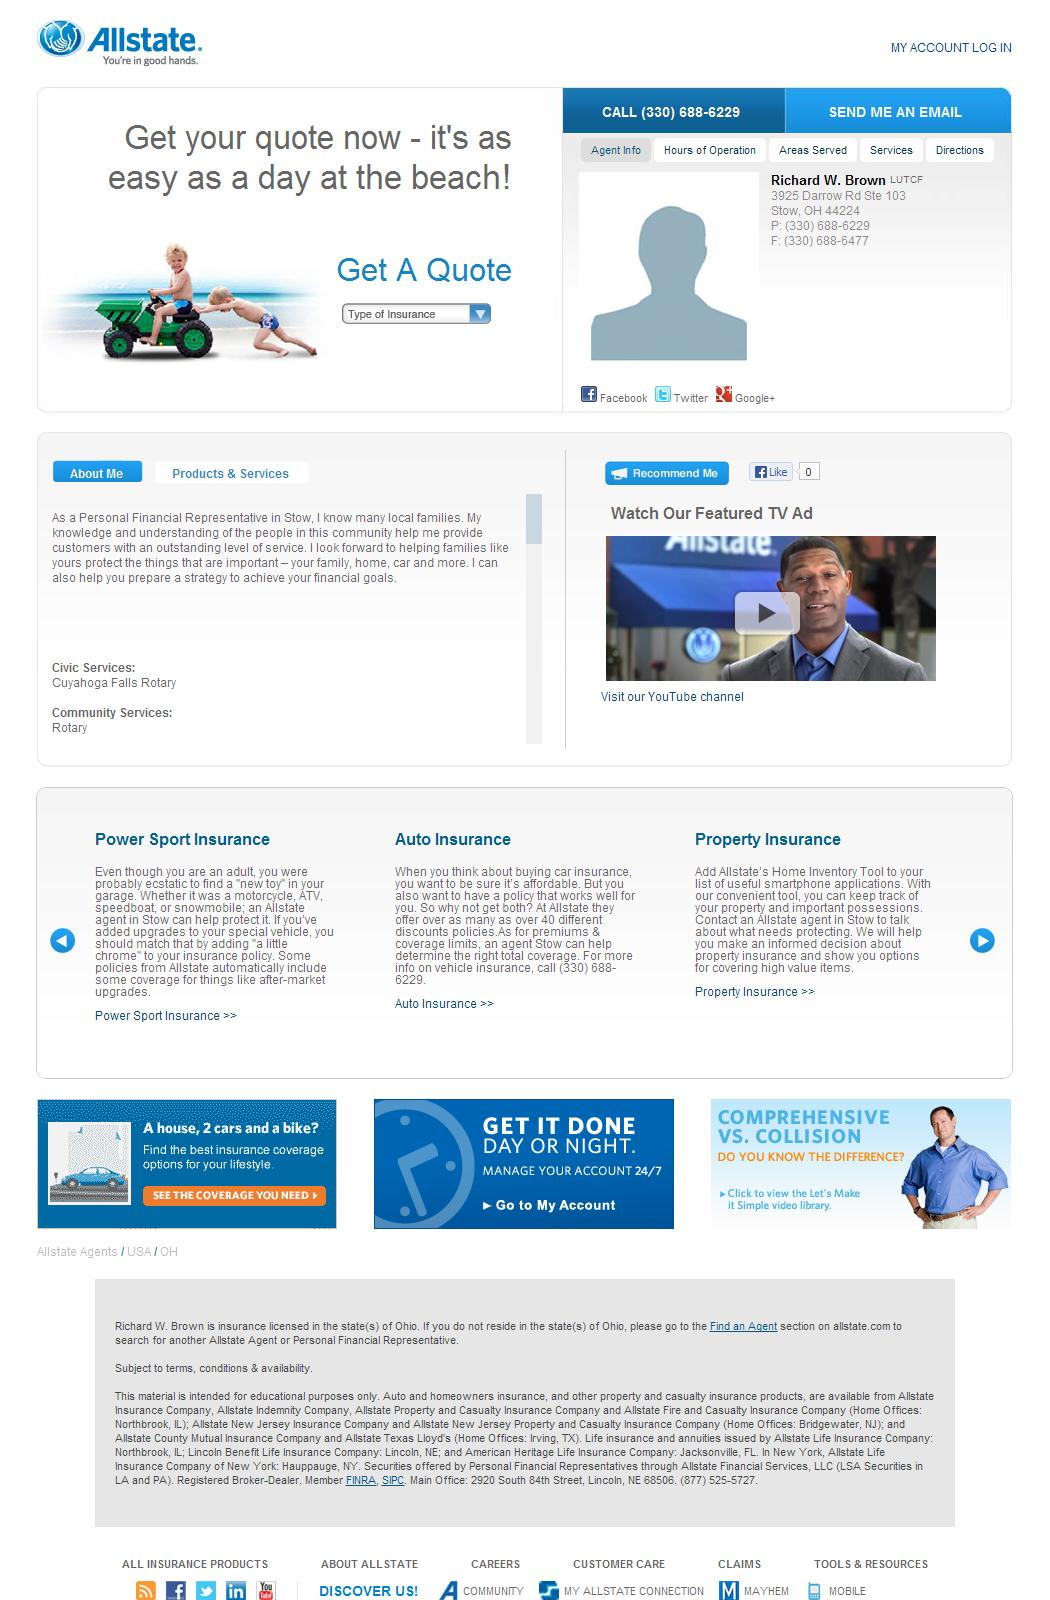 process of tracking customer contacts and providing the customer with a price quote is